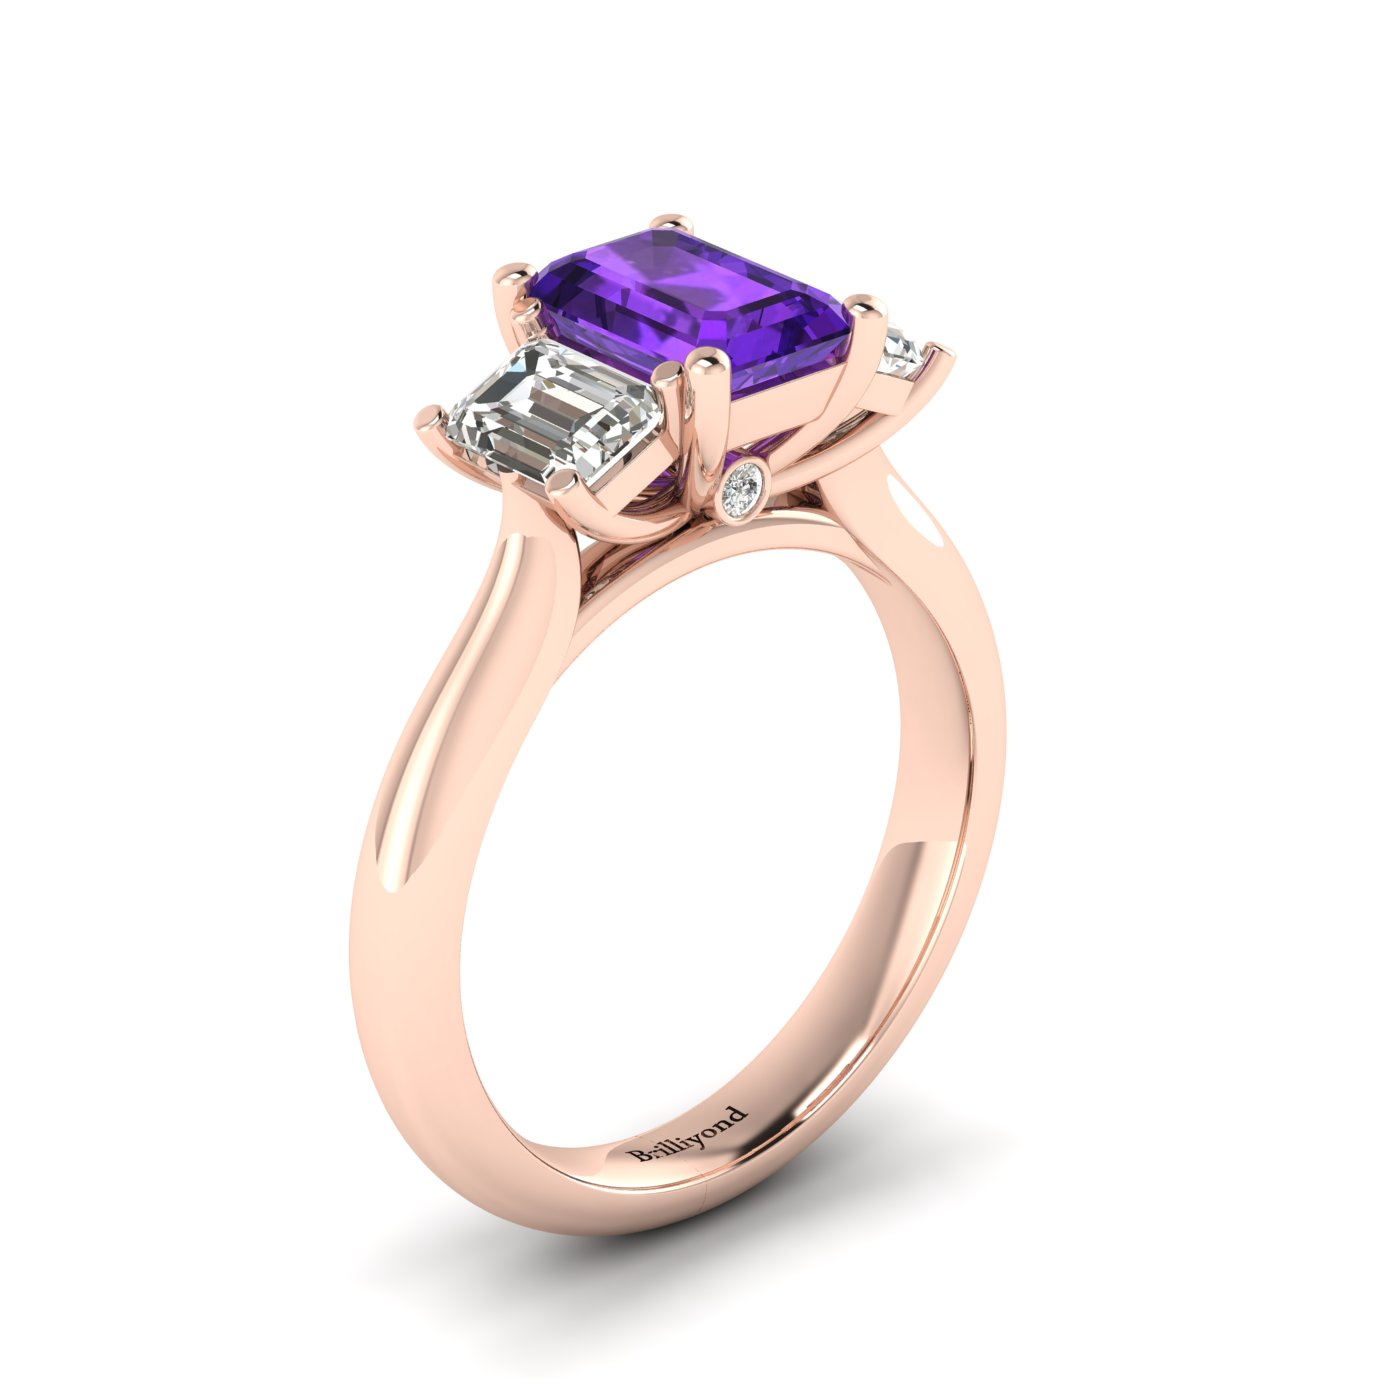 Amethyst Rose Gold Emerald Cut Engagement Ring Blanche_image1